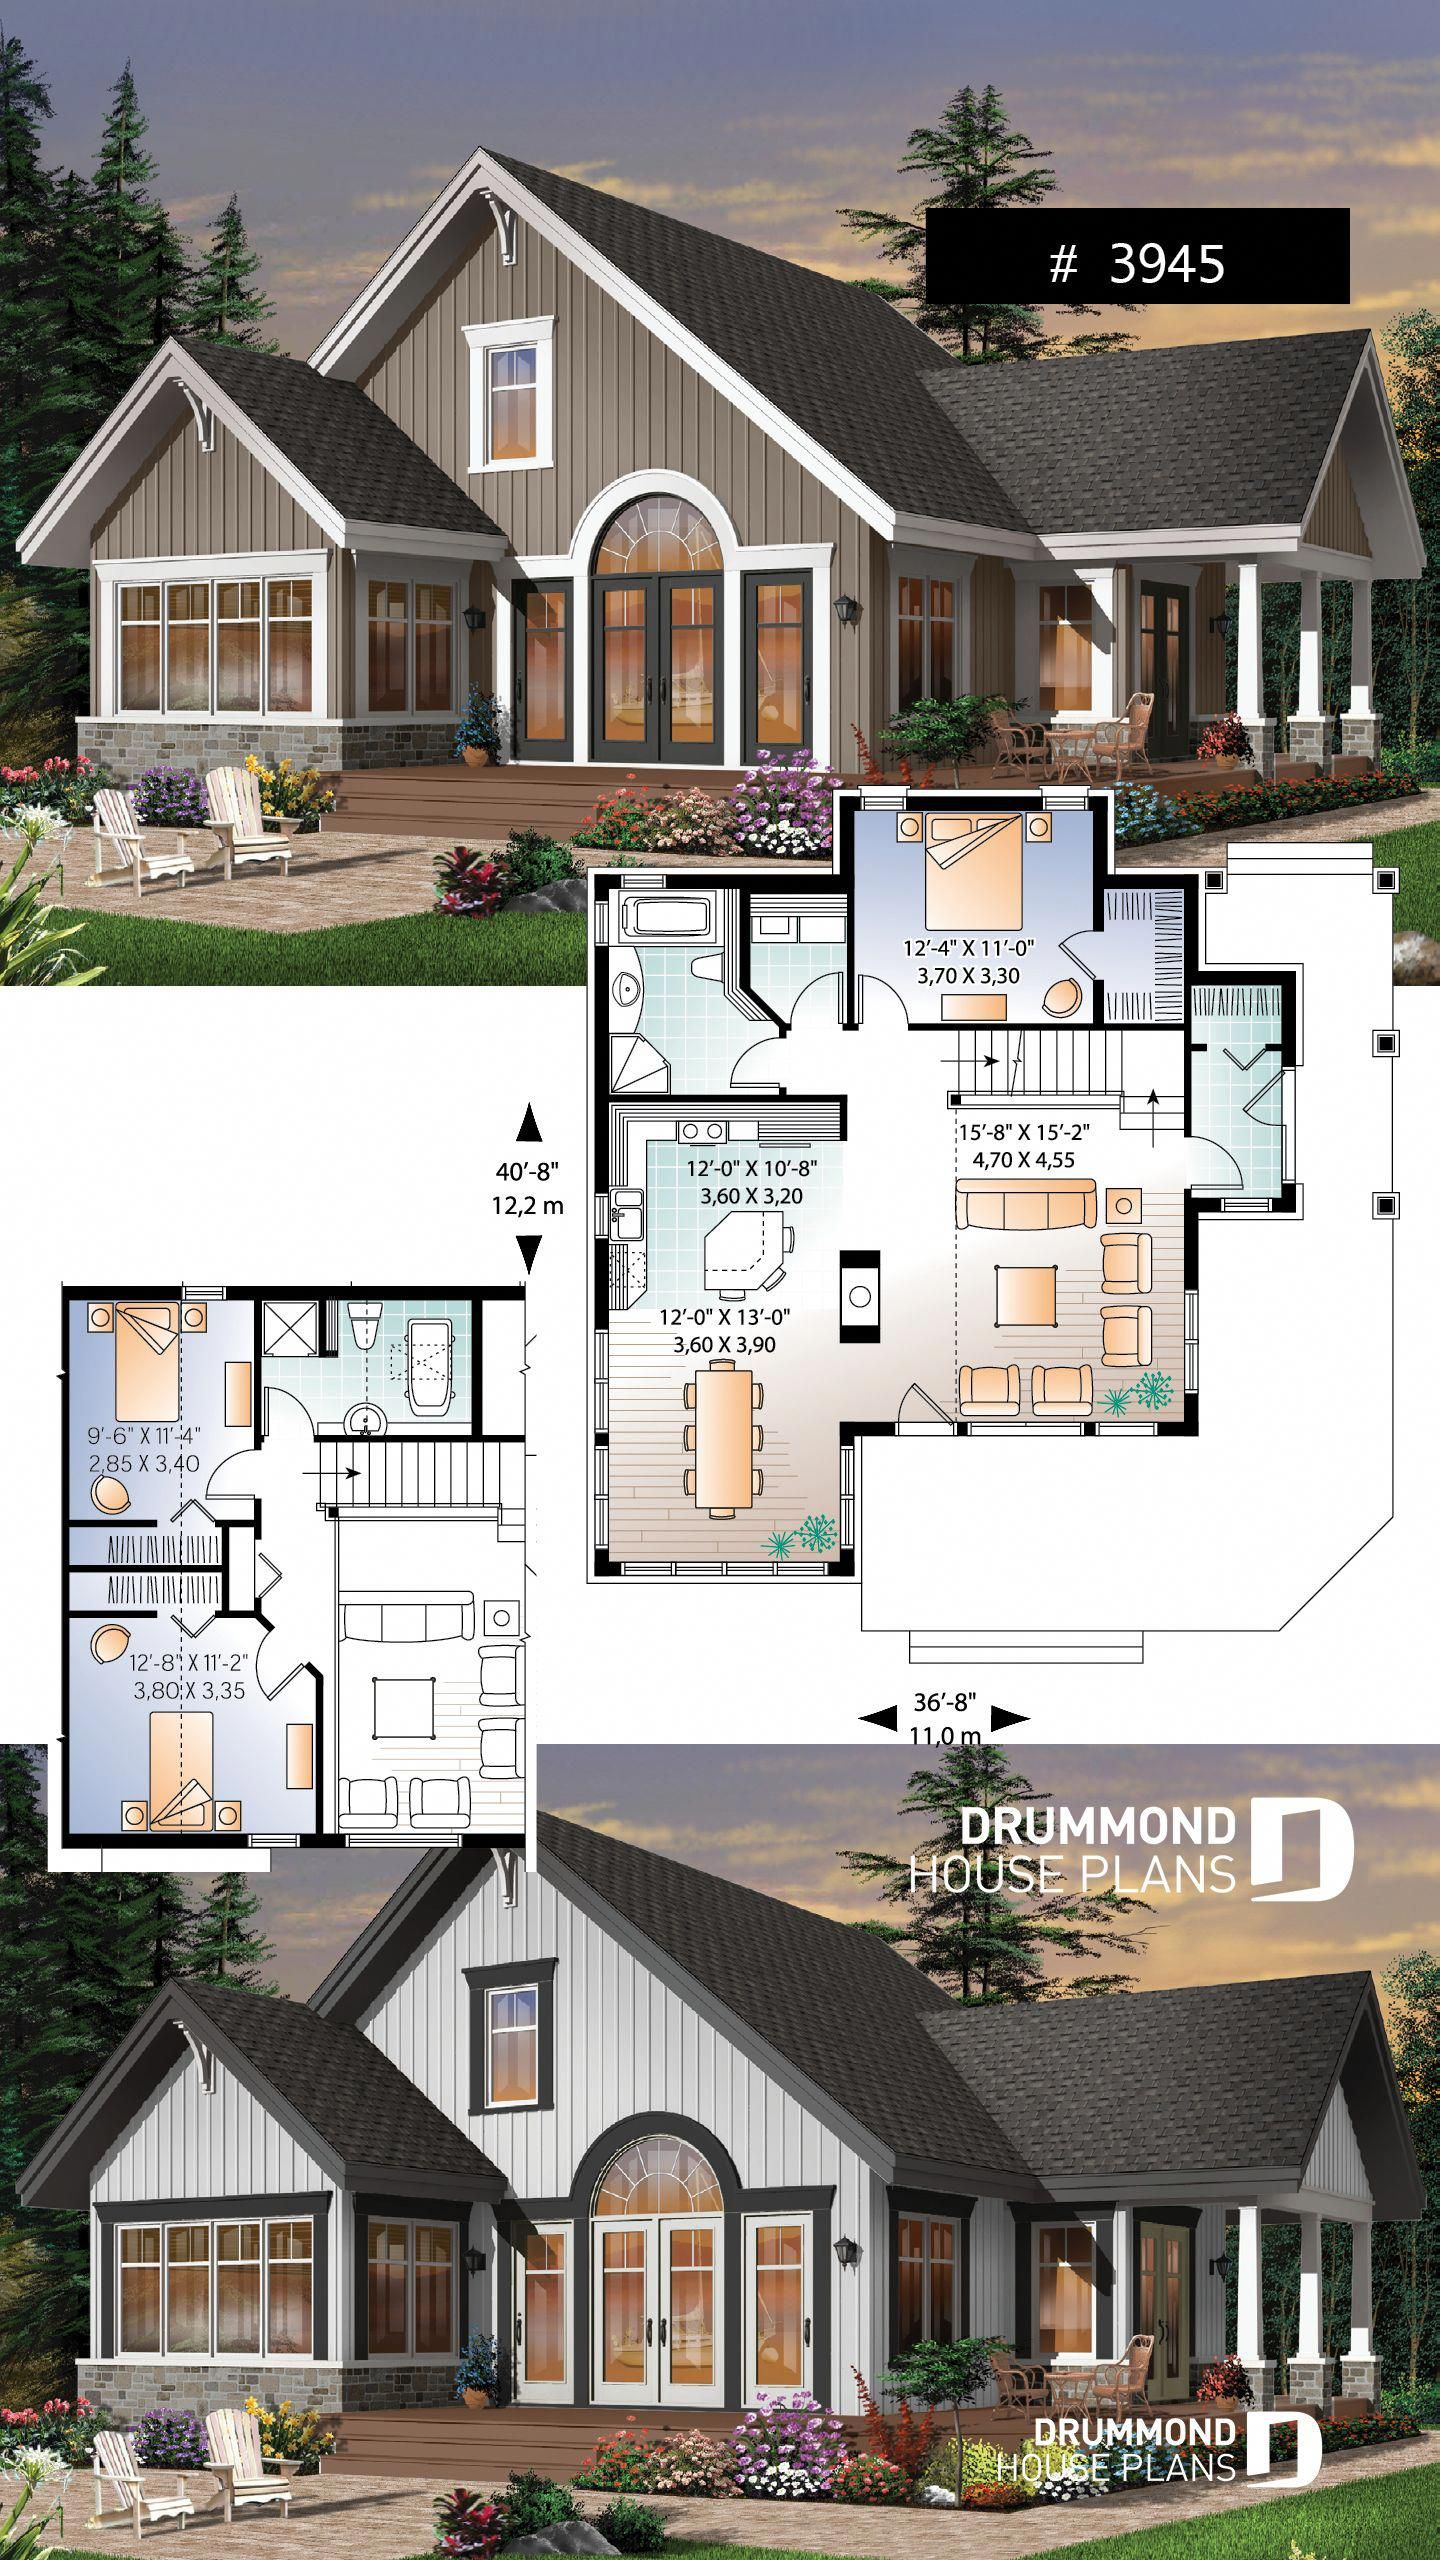 1st Level Foyer Living Room Kitchen Dinette Dining Room Bathroom Laundry Facilities And Bedroom 1 2nd Leve House Blueprints Sims House Plans House Plans